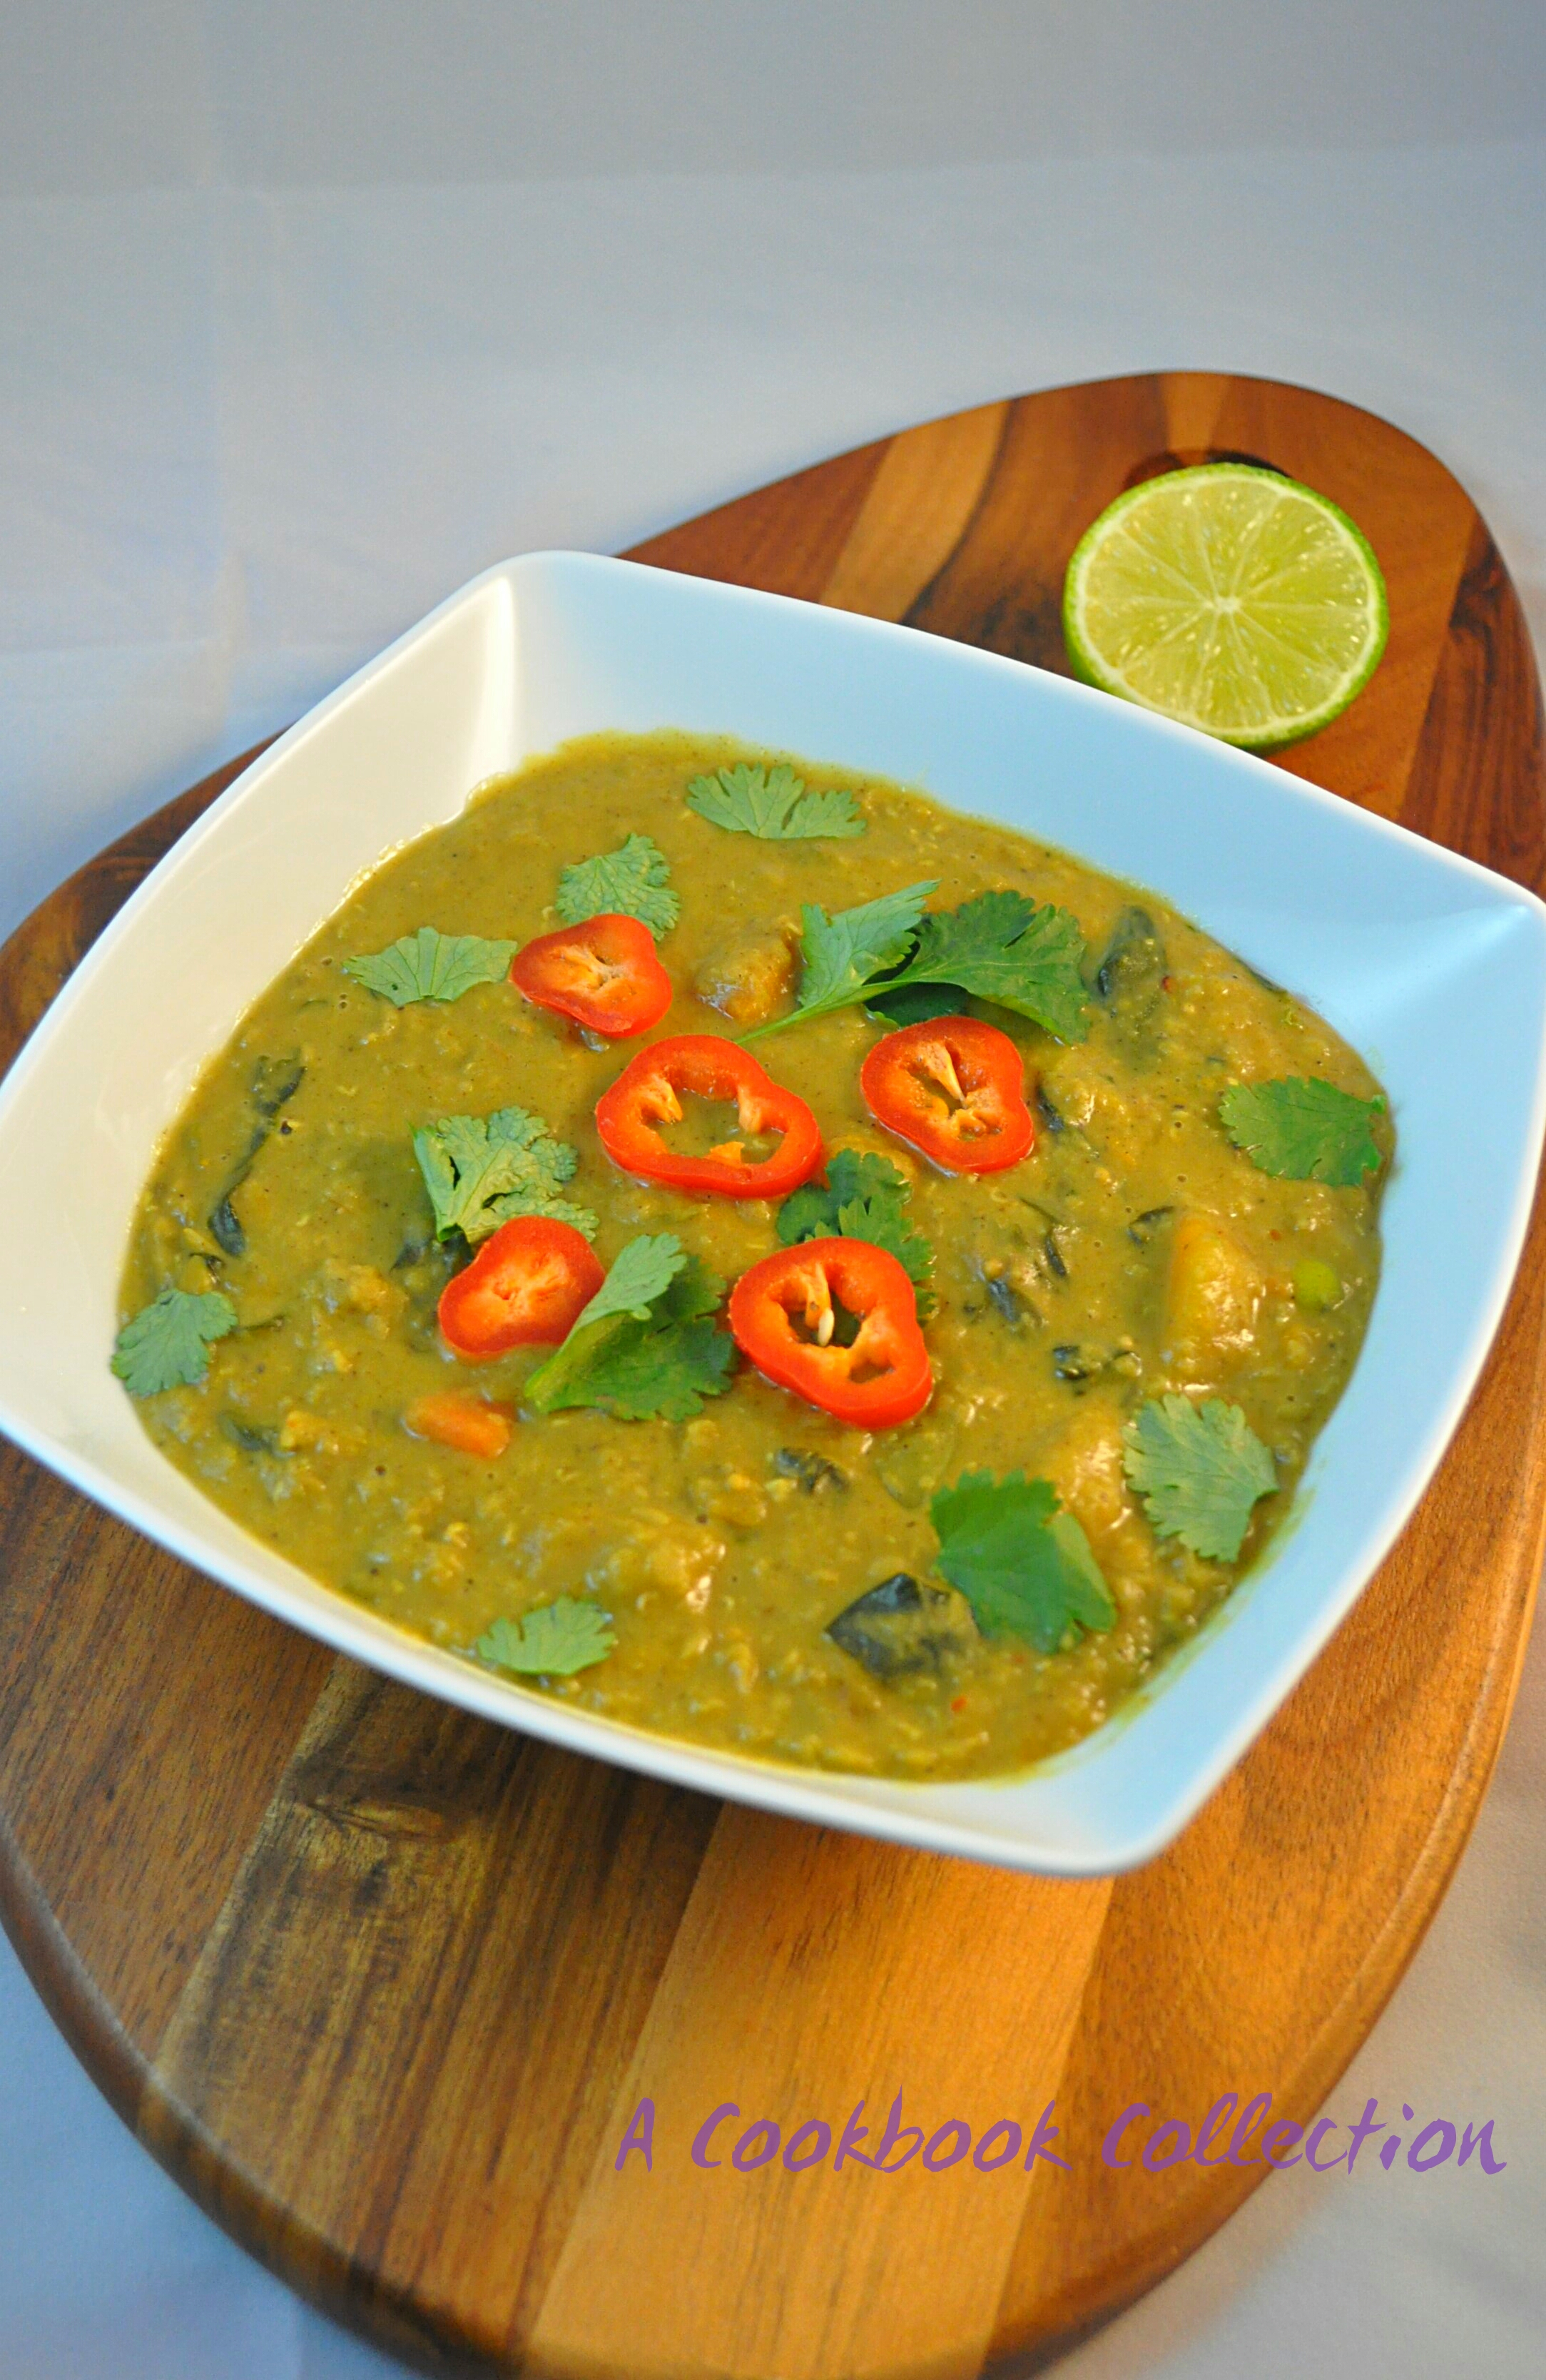 Malaysian Lentil Curry -A Cookbook Collection